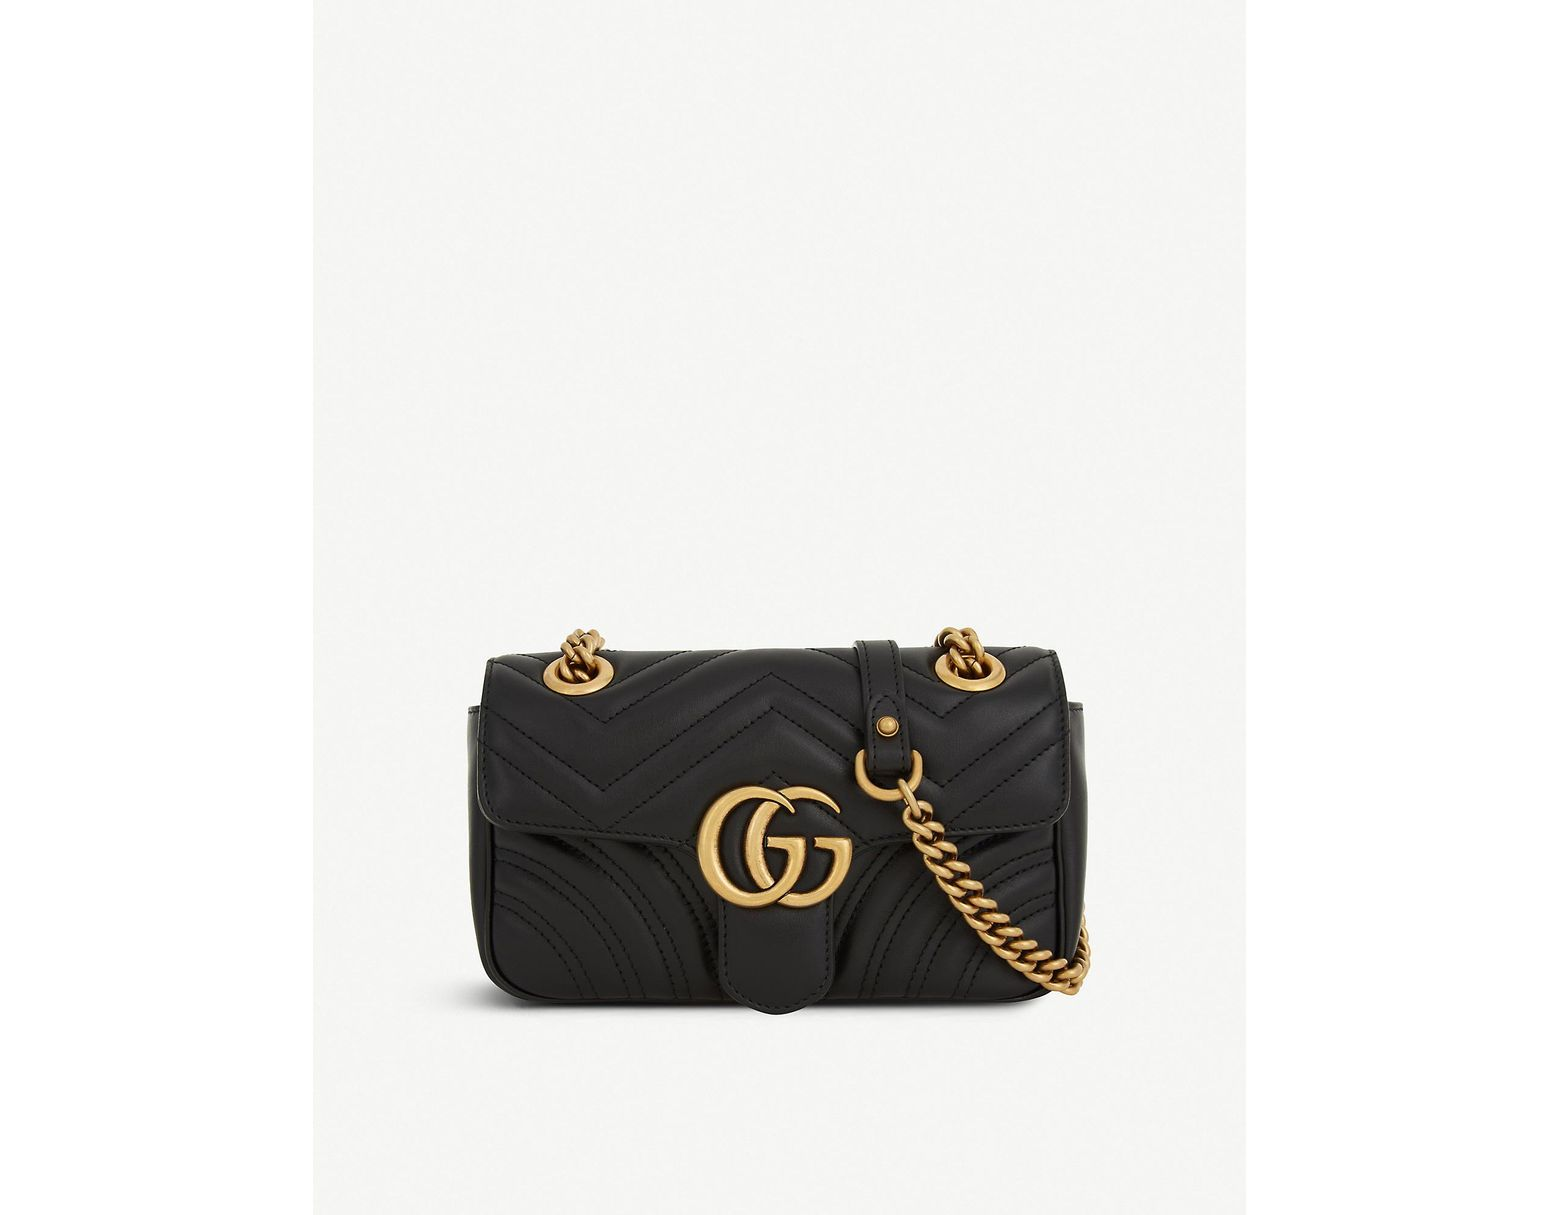 0dd6b728df6 Lyst - Gucci Women s Black Heart Embroidered Marmont GG Mini Leather Cross  Body Bag in Black